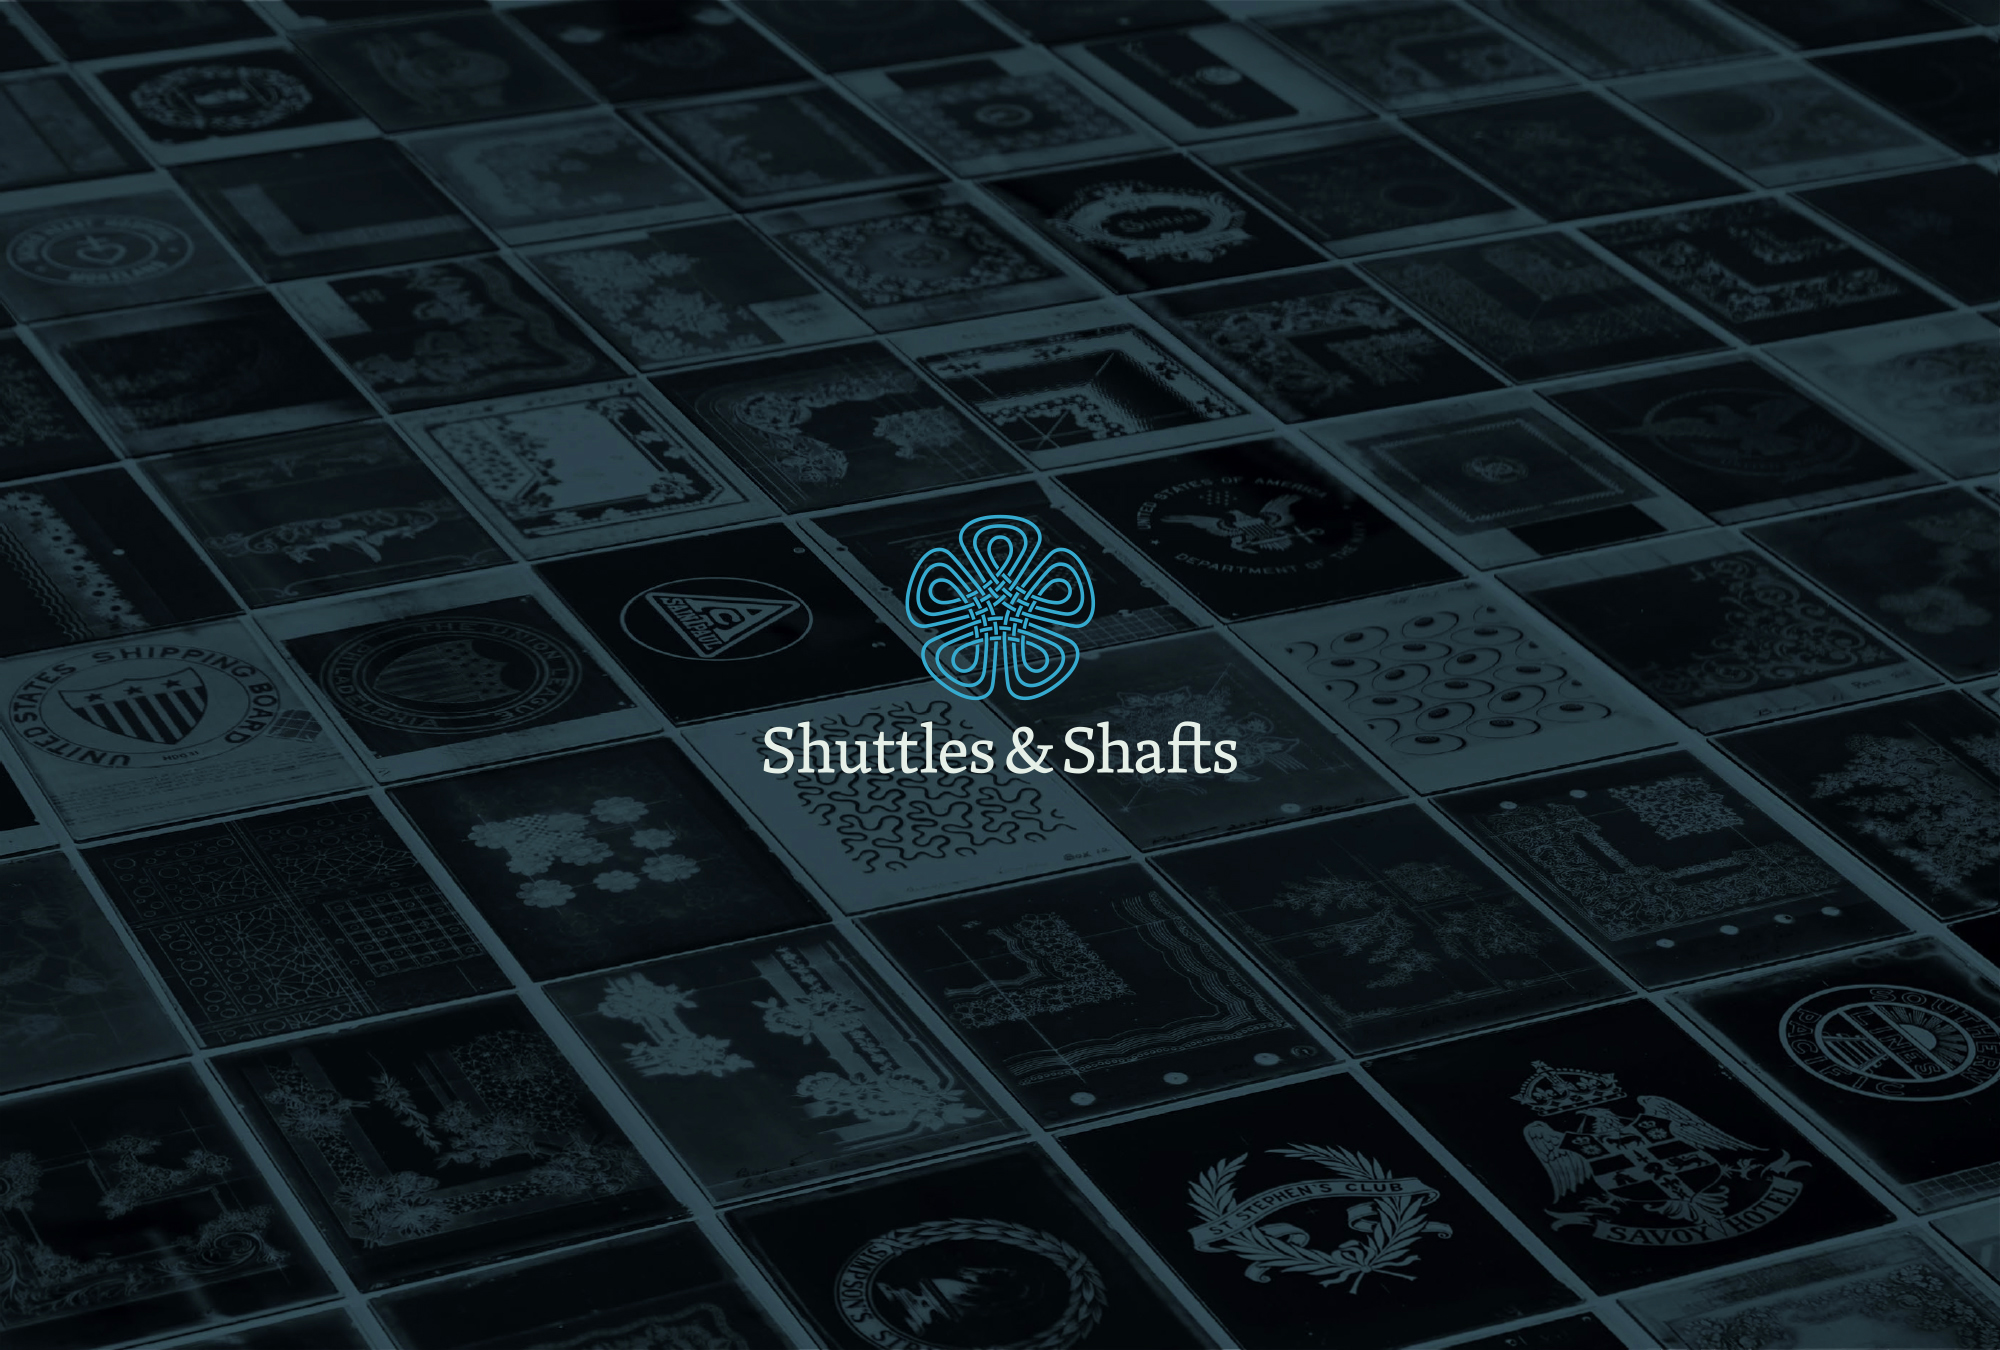 Cover image: Shuttles & Shafts